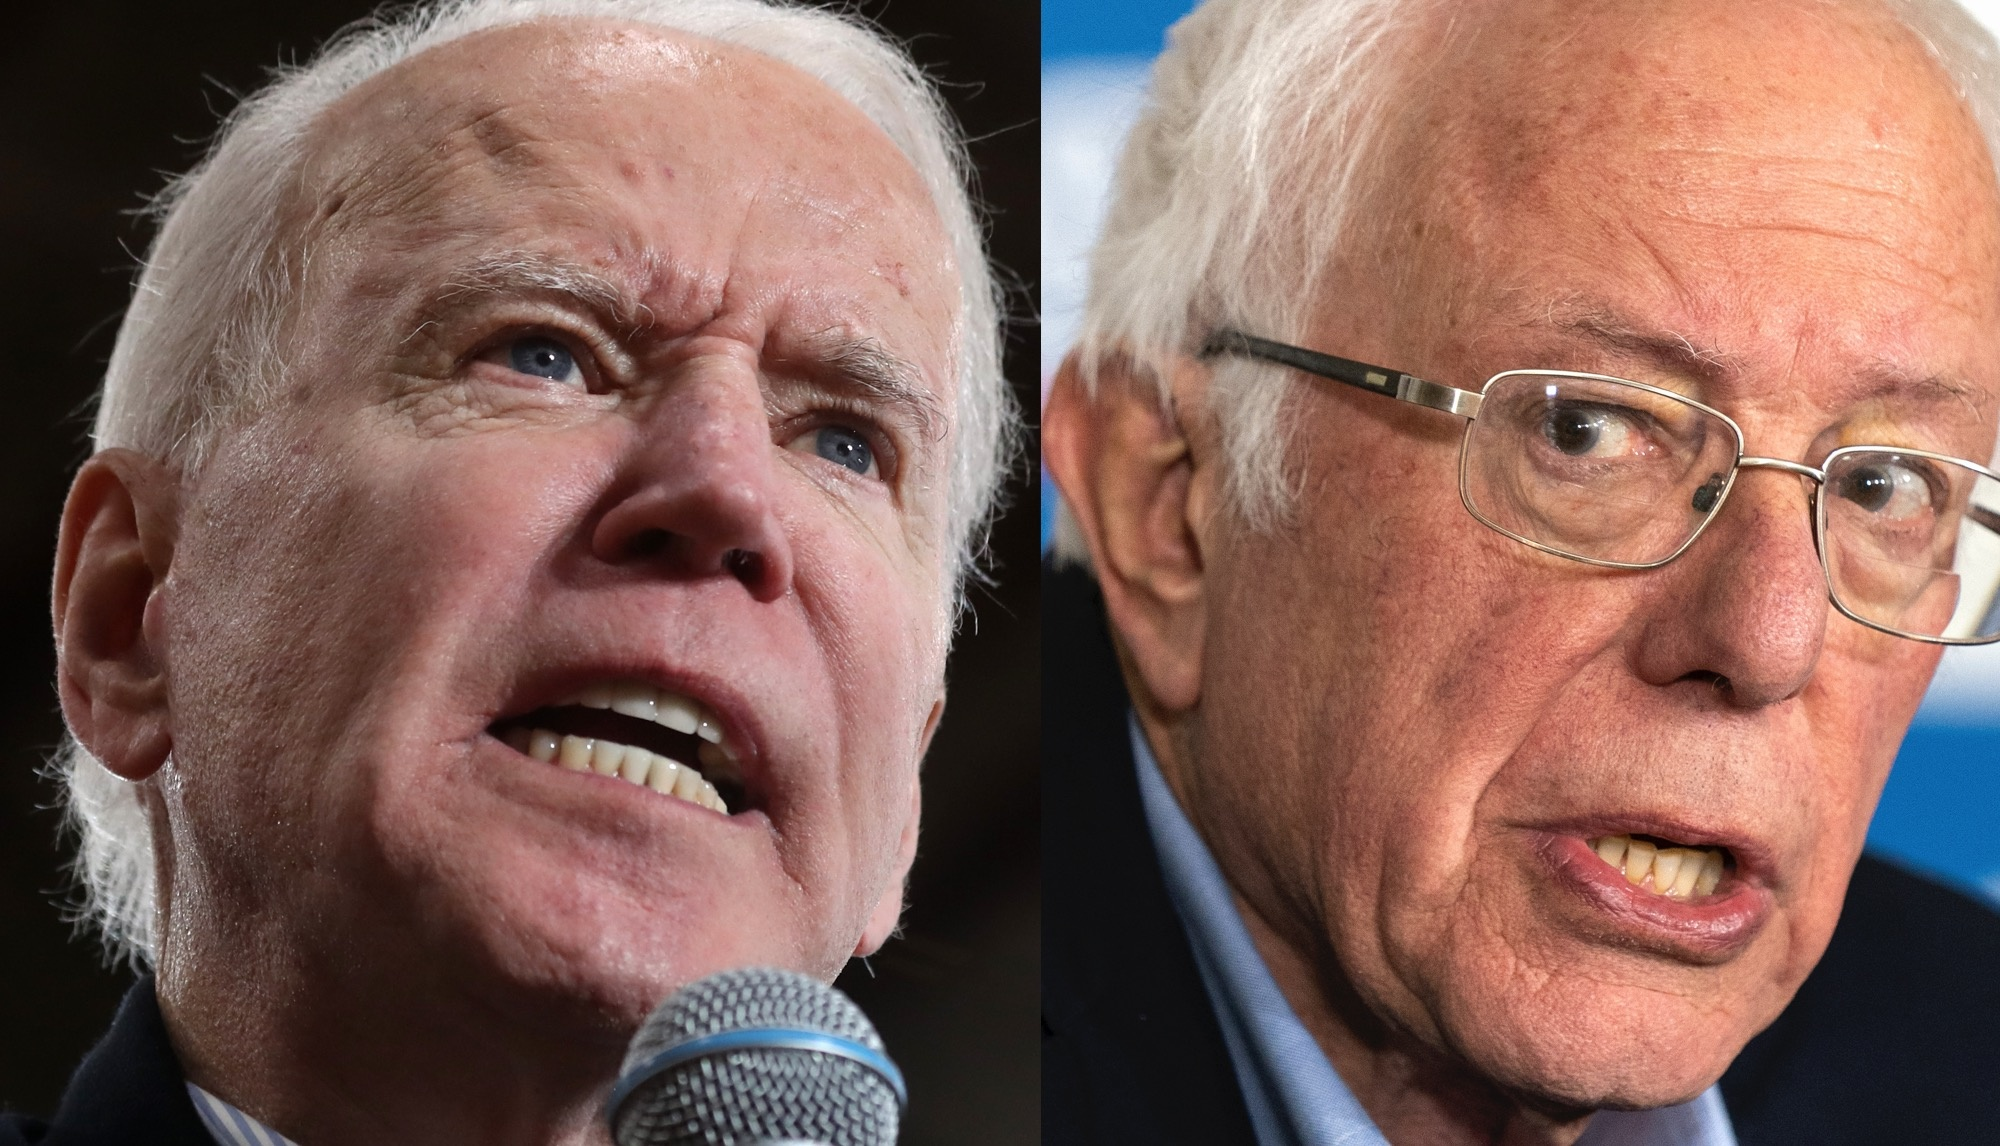 Joe Biden excoriates Bernie Sanders in scathing statement about 'offensive' Cuba comments